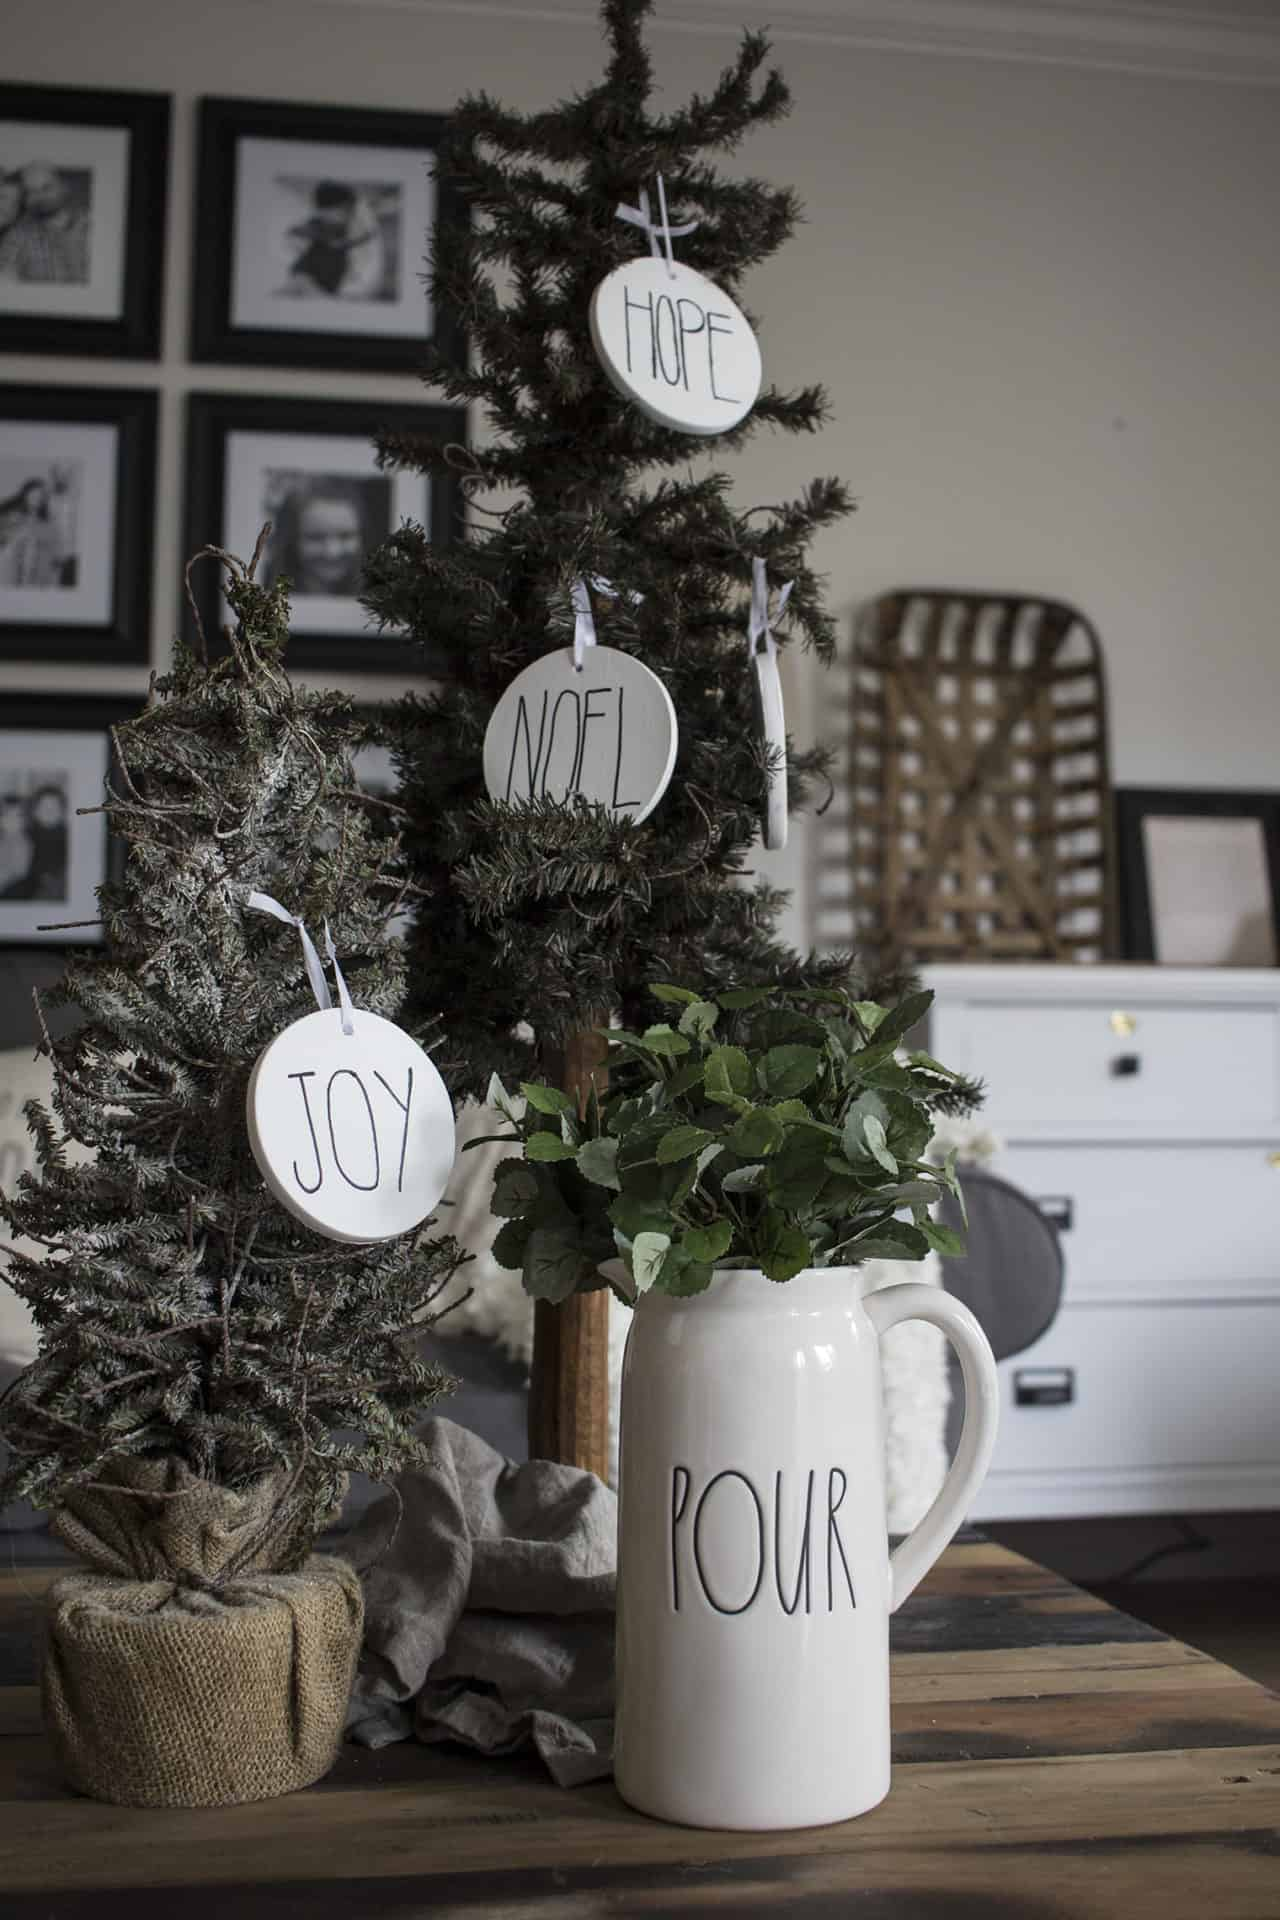 How To Make Rae Dunn Ornaments With A Sharpie